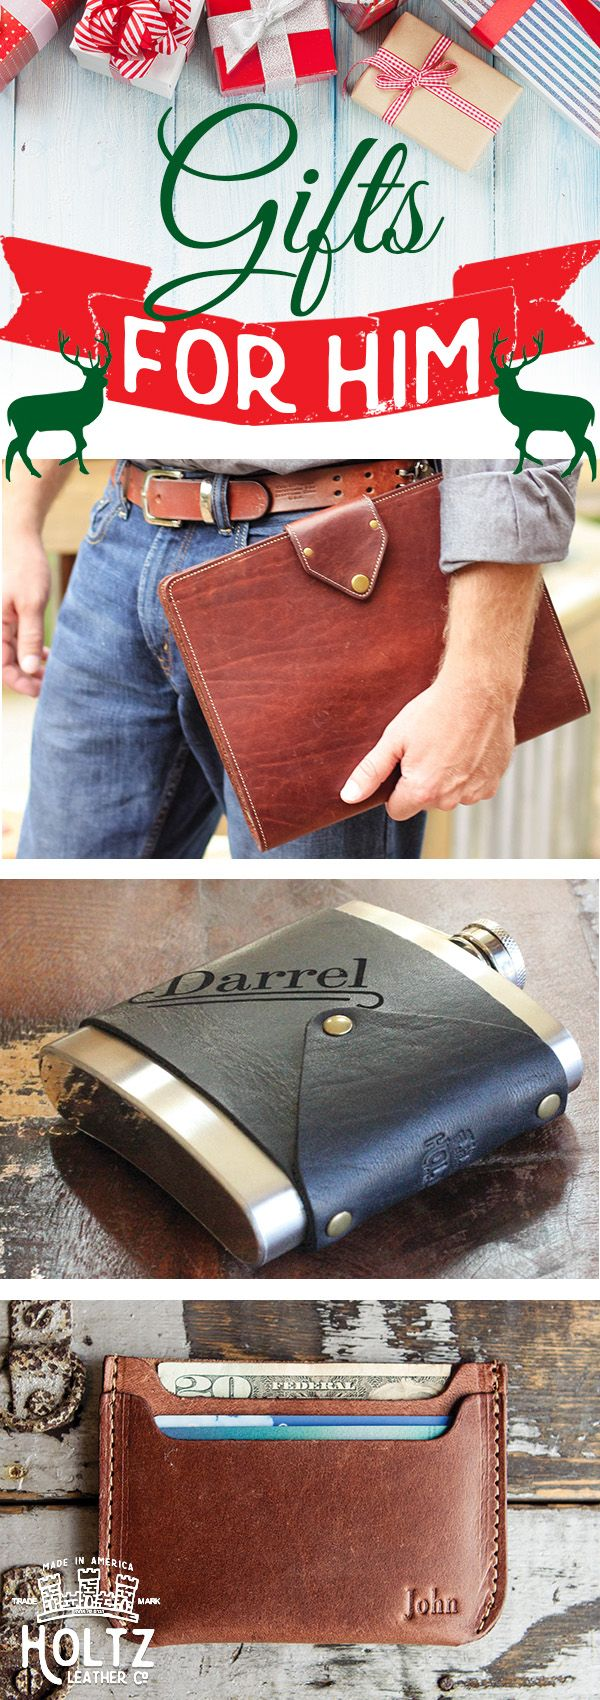 """These handmade leather gifts are sure to bring a smile to any man's face on Christmas morning! Check out these """"Gifts for Him"""" from Holtz Leather."""